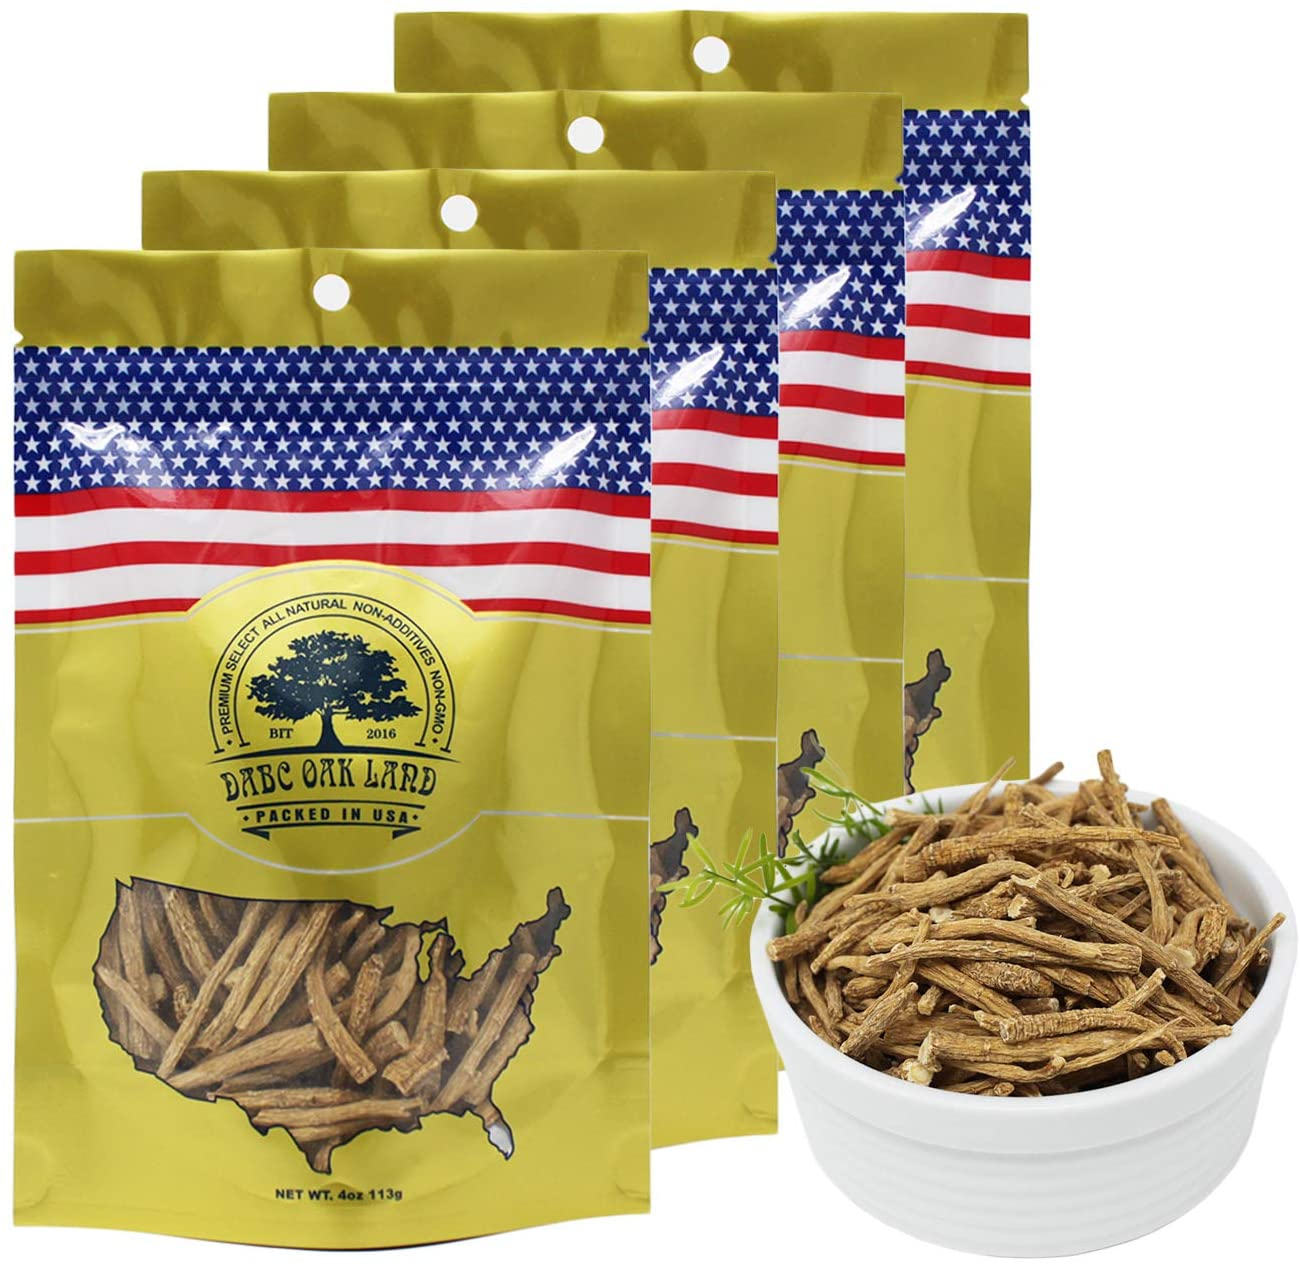 DABC OAK LAND 4OZ*4=453g/4 Bags American Ginseng Root Fiber,American Wisconsin Farmed Ginseng Root | 美国威斯康辛州西洋参须 花旗参须 促销装 | Hand-Selected Cultivated Ginseng for Tea or Powder 0158# Bag